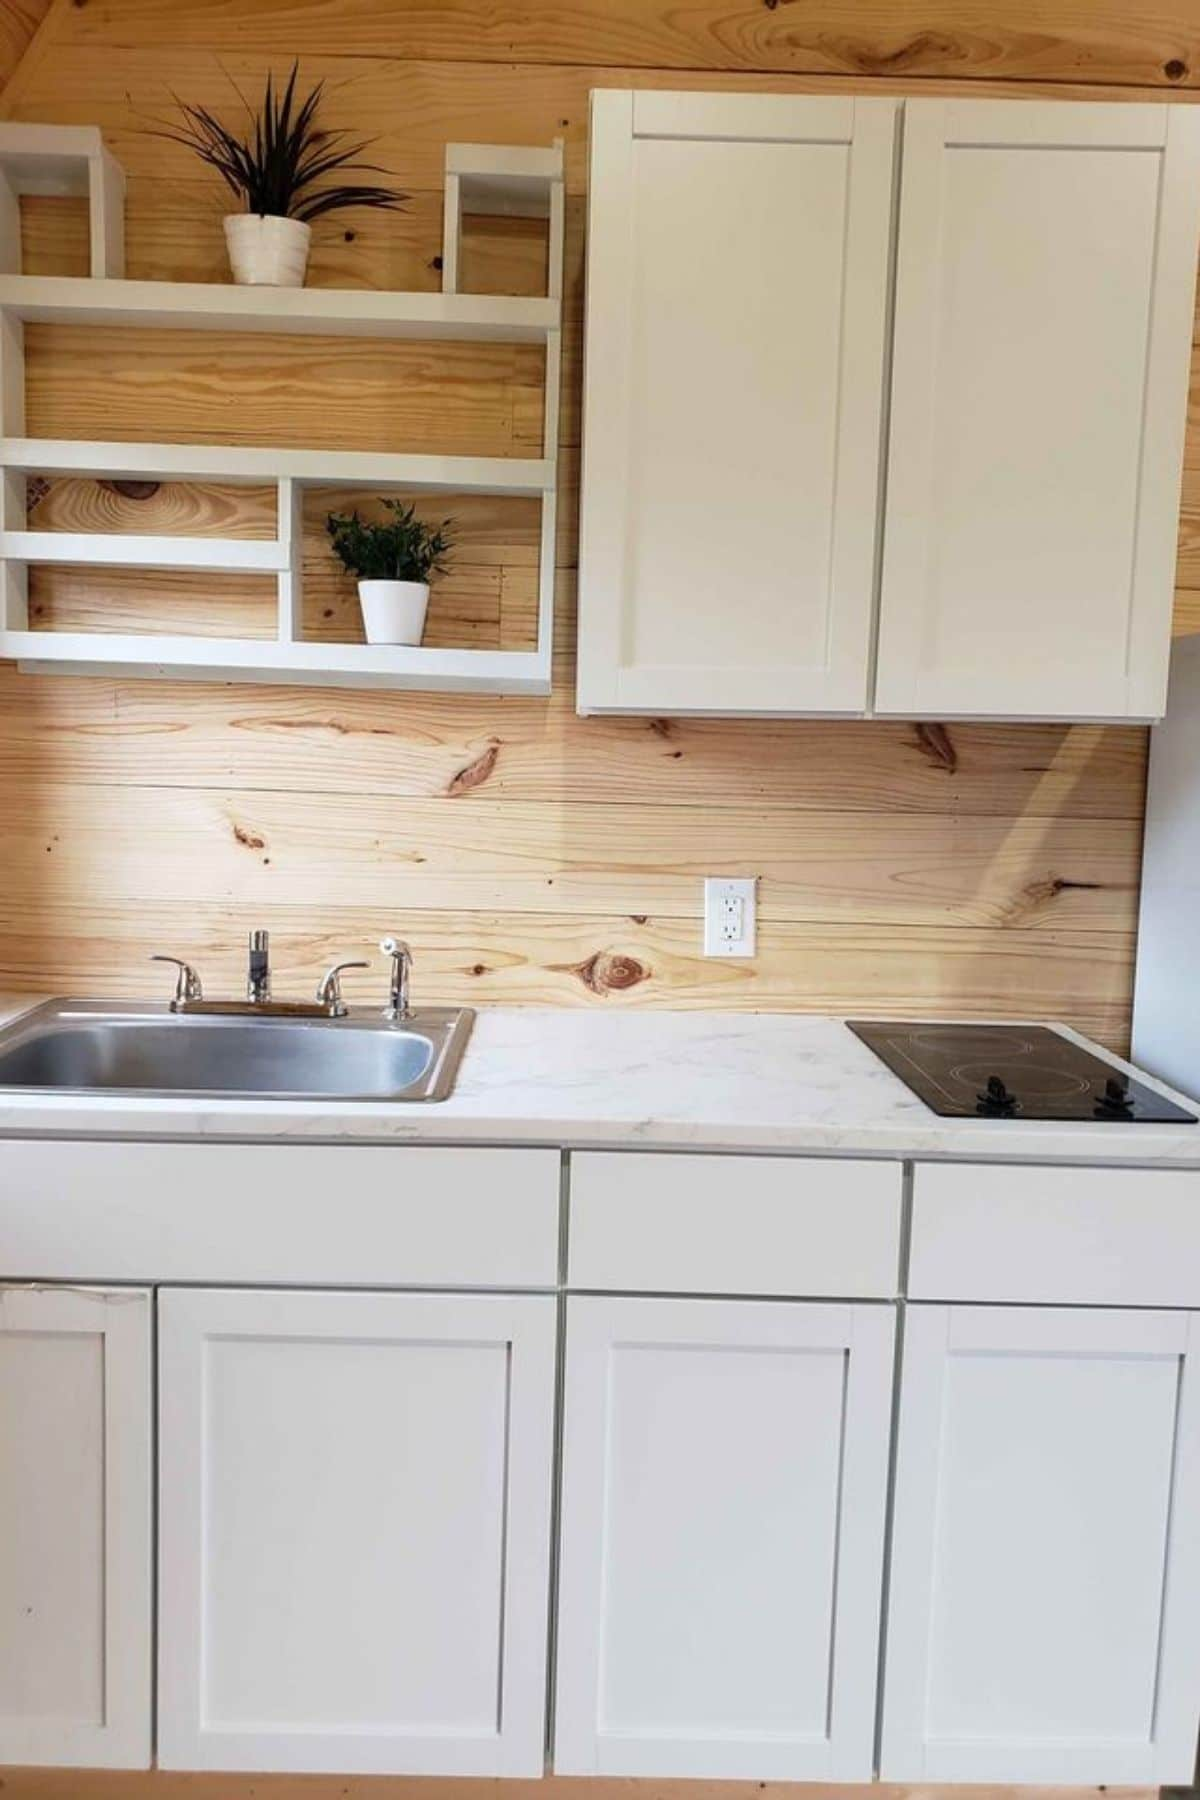 close up of sink with 2-burner cooktop on white cabinets